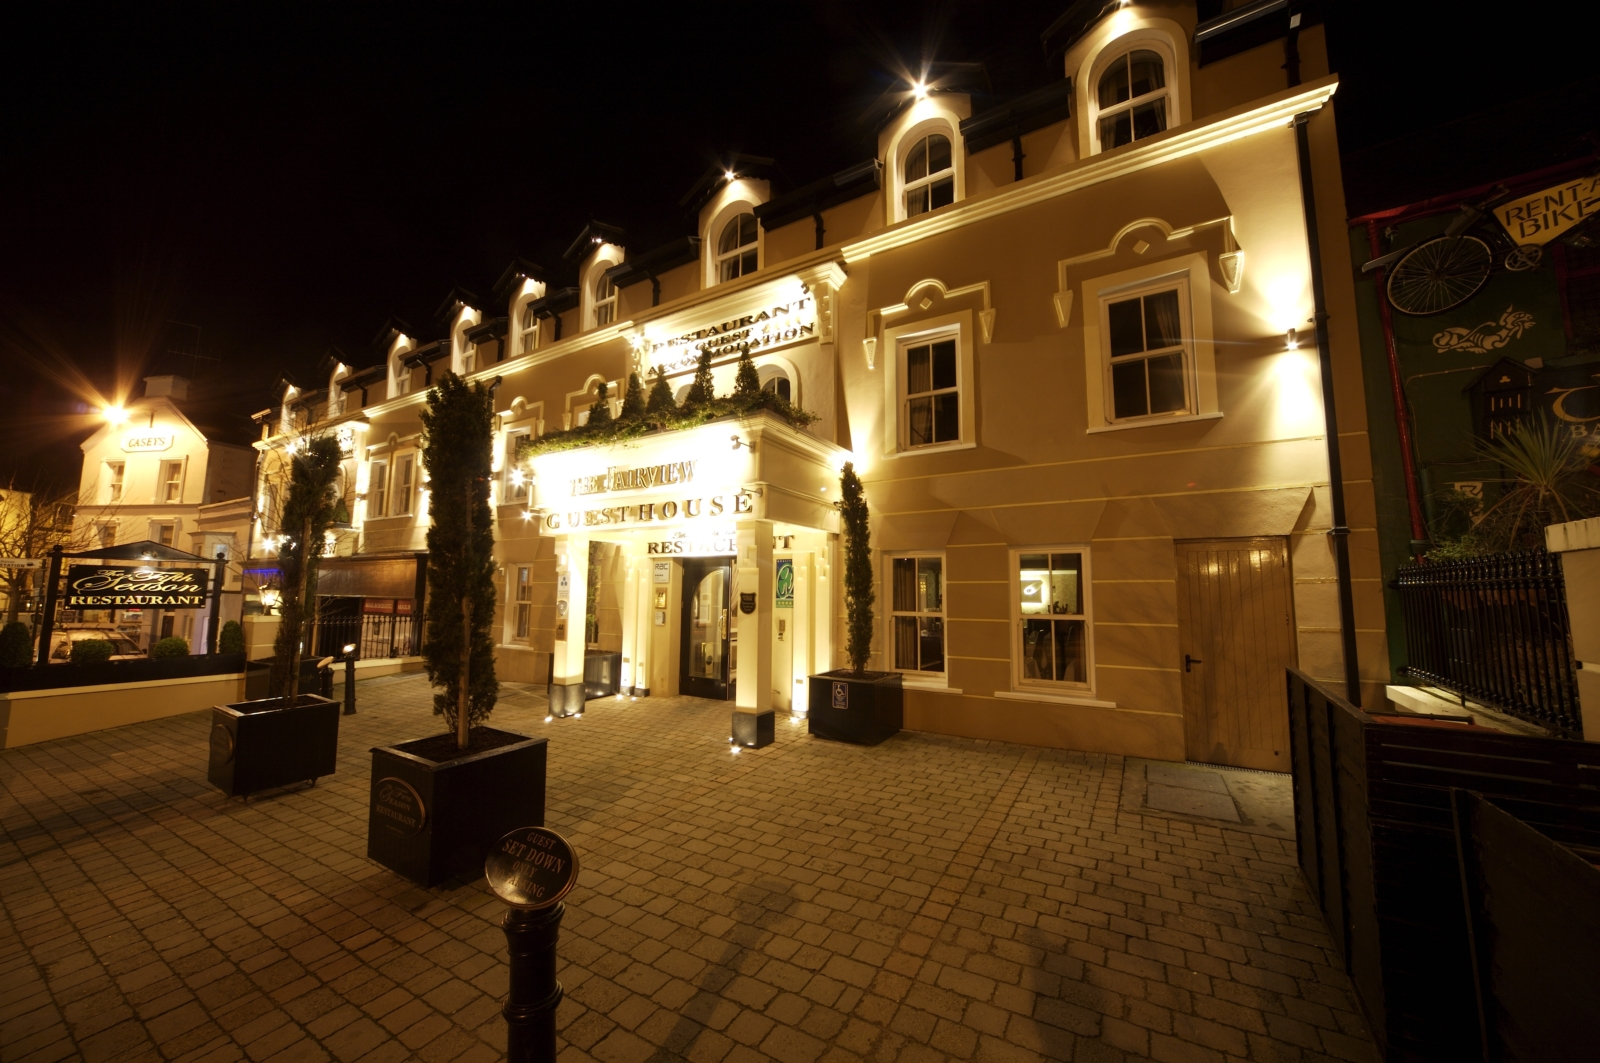 The Fairview Hotel Killarney | Personal Driver Ireland